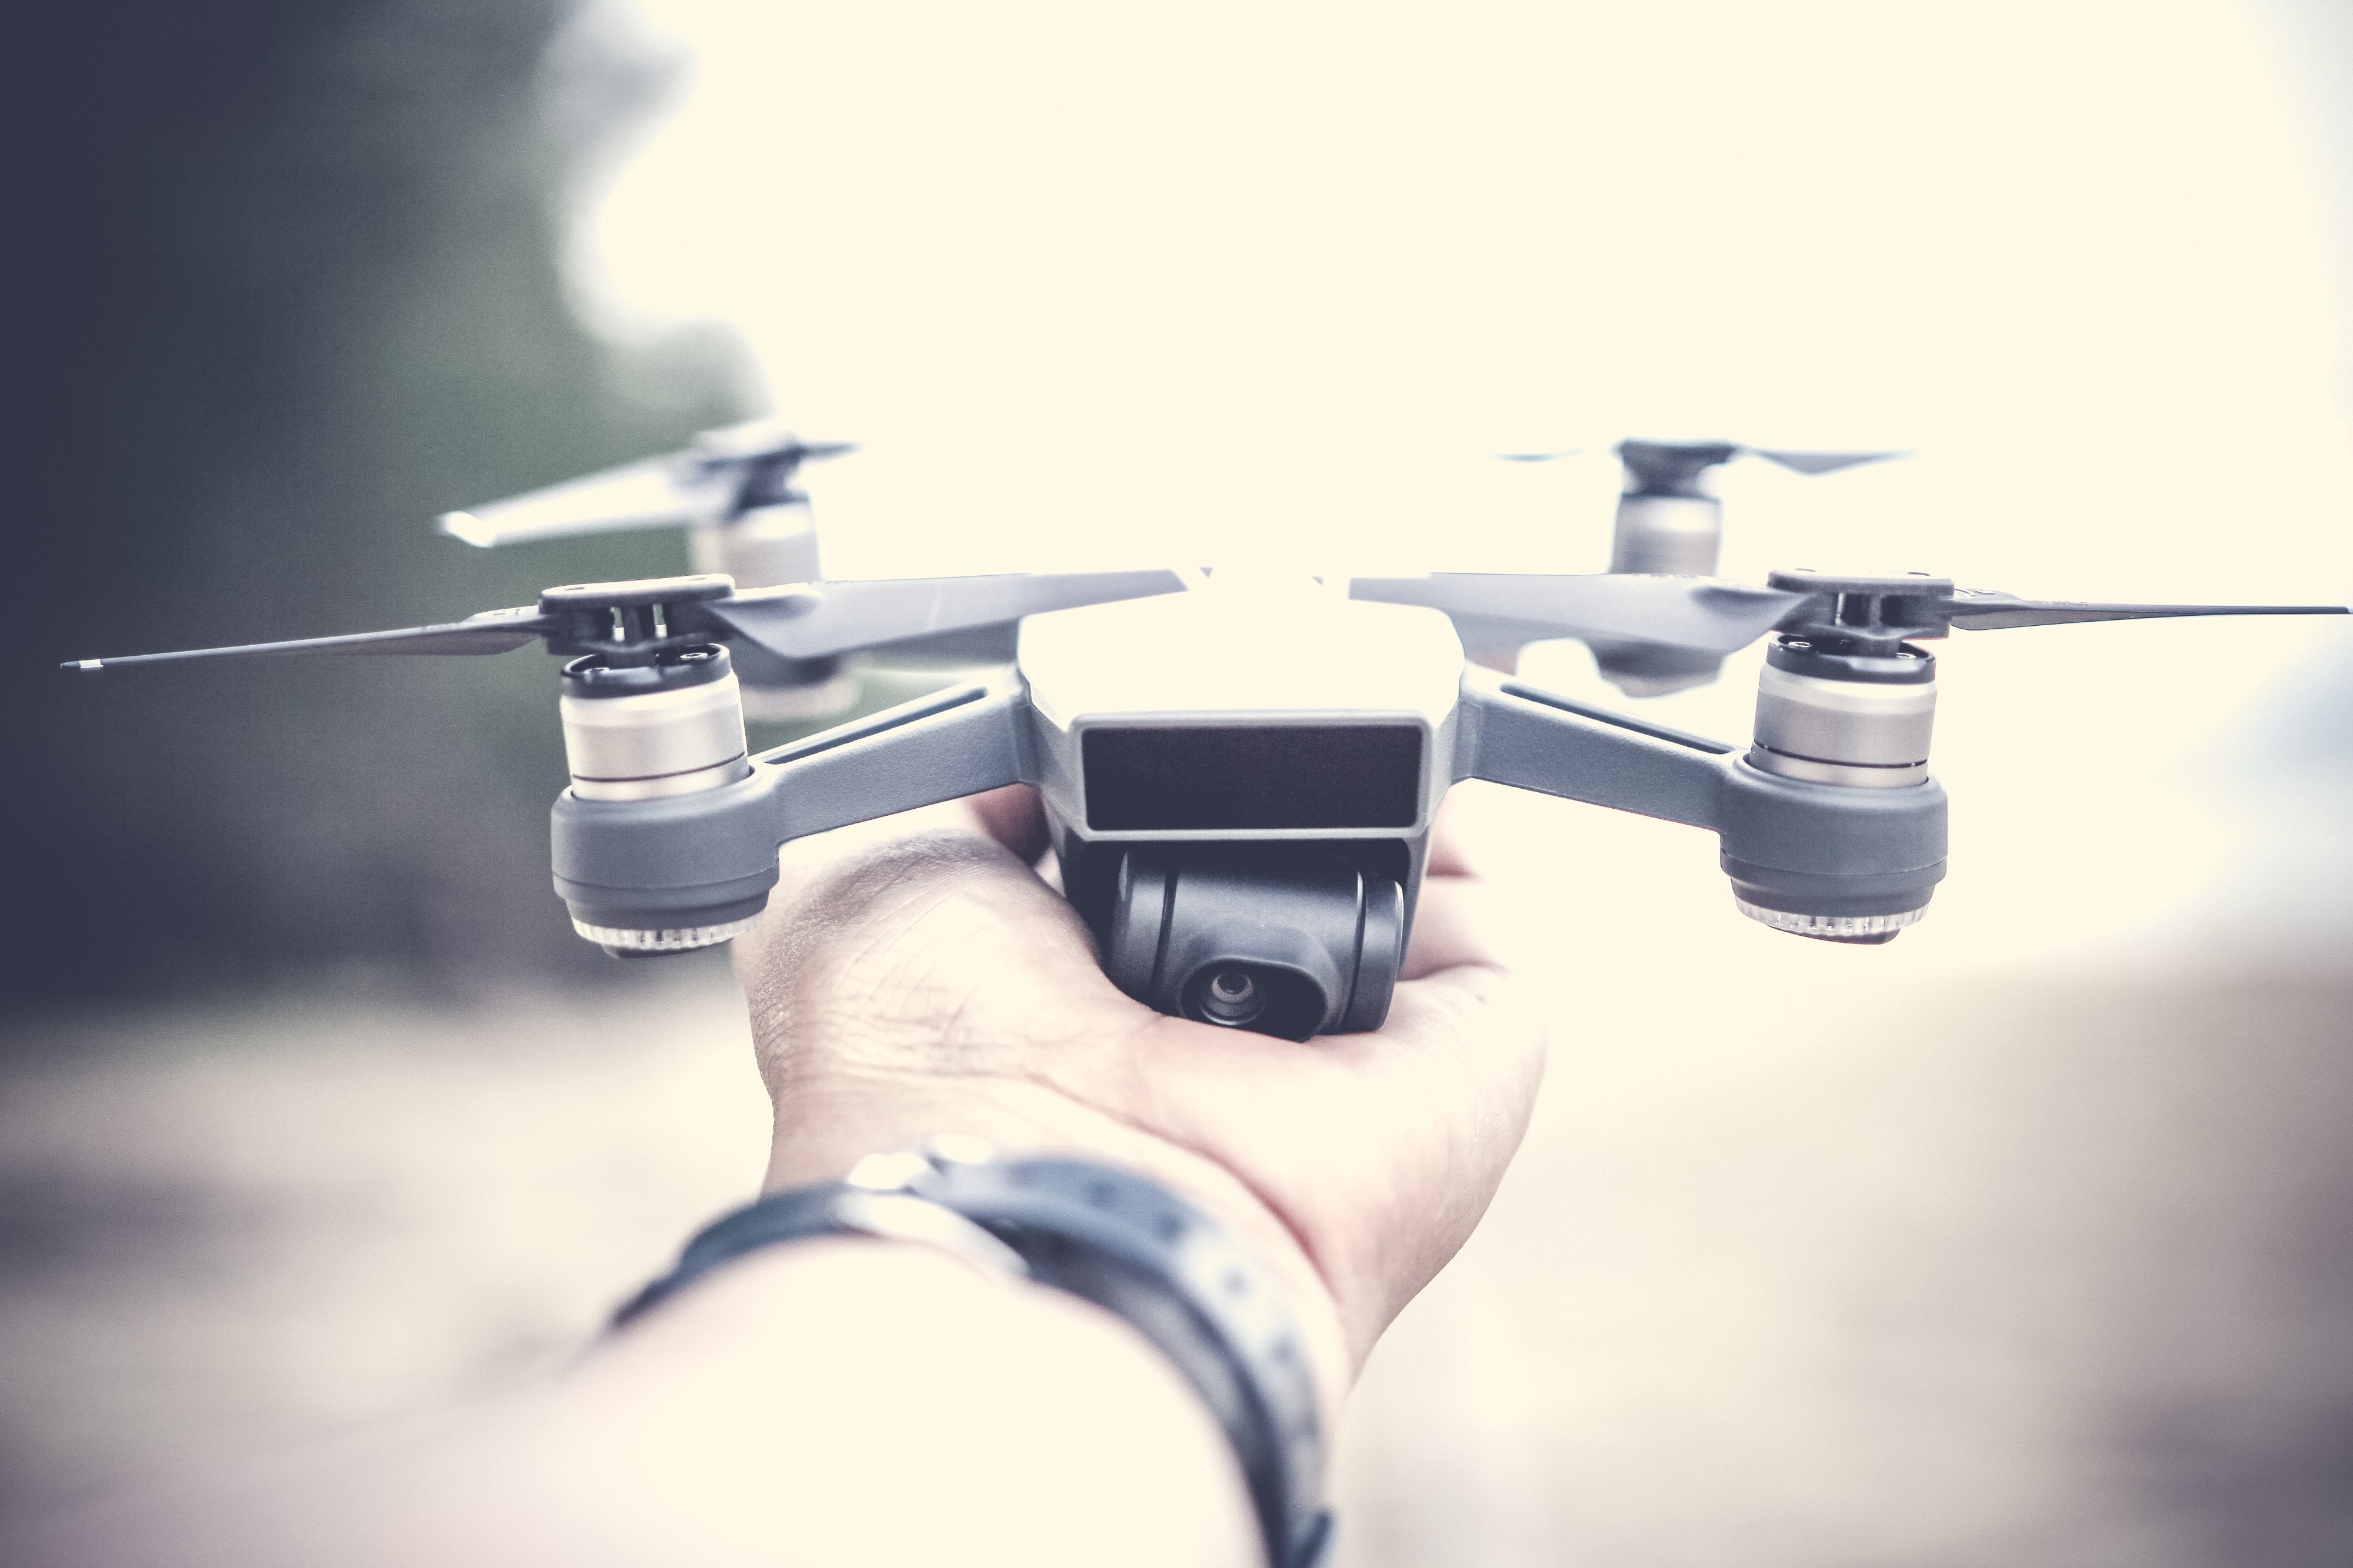 How DJI Became the Drone Industry's Most Valued Company